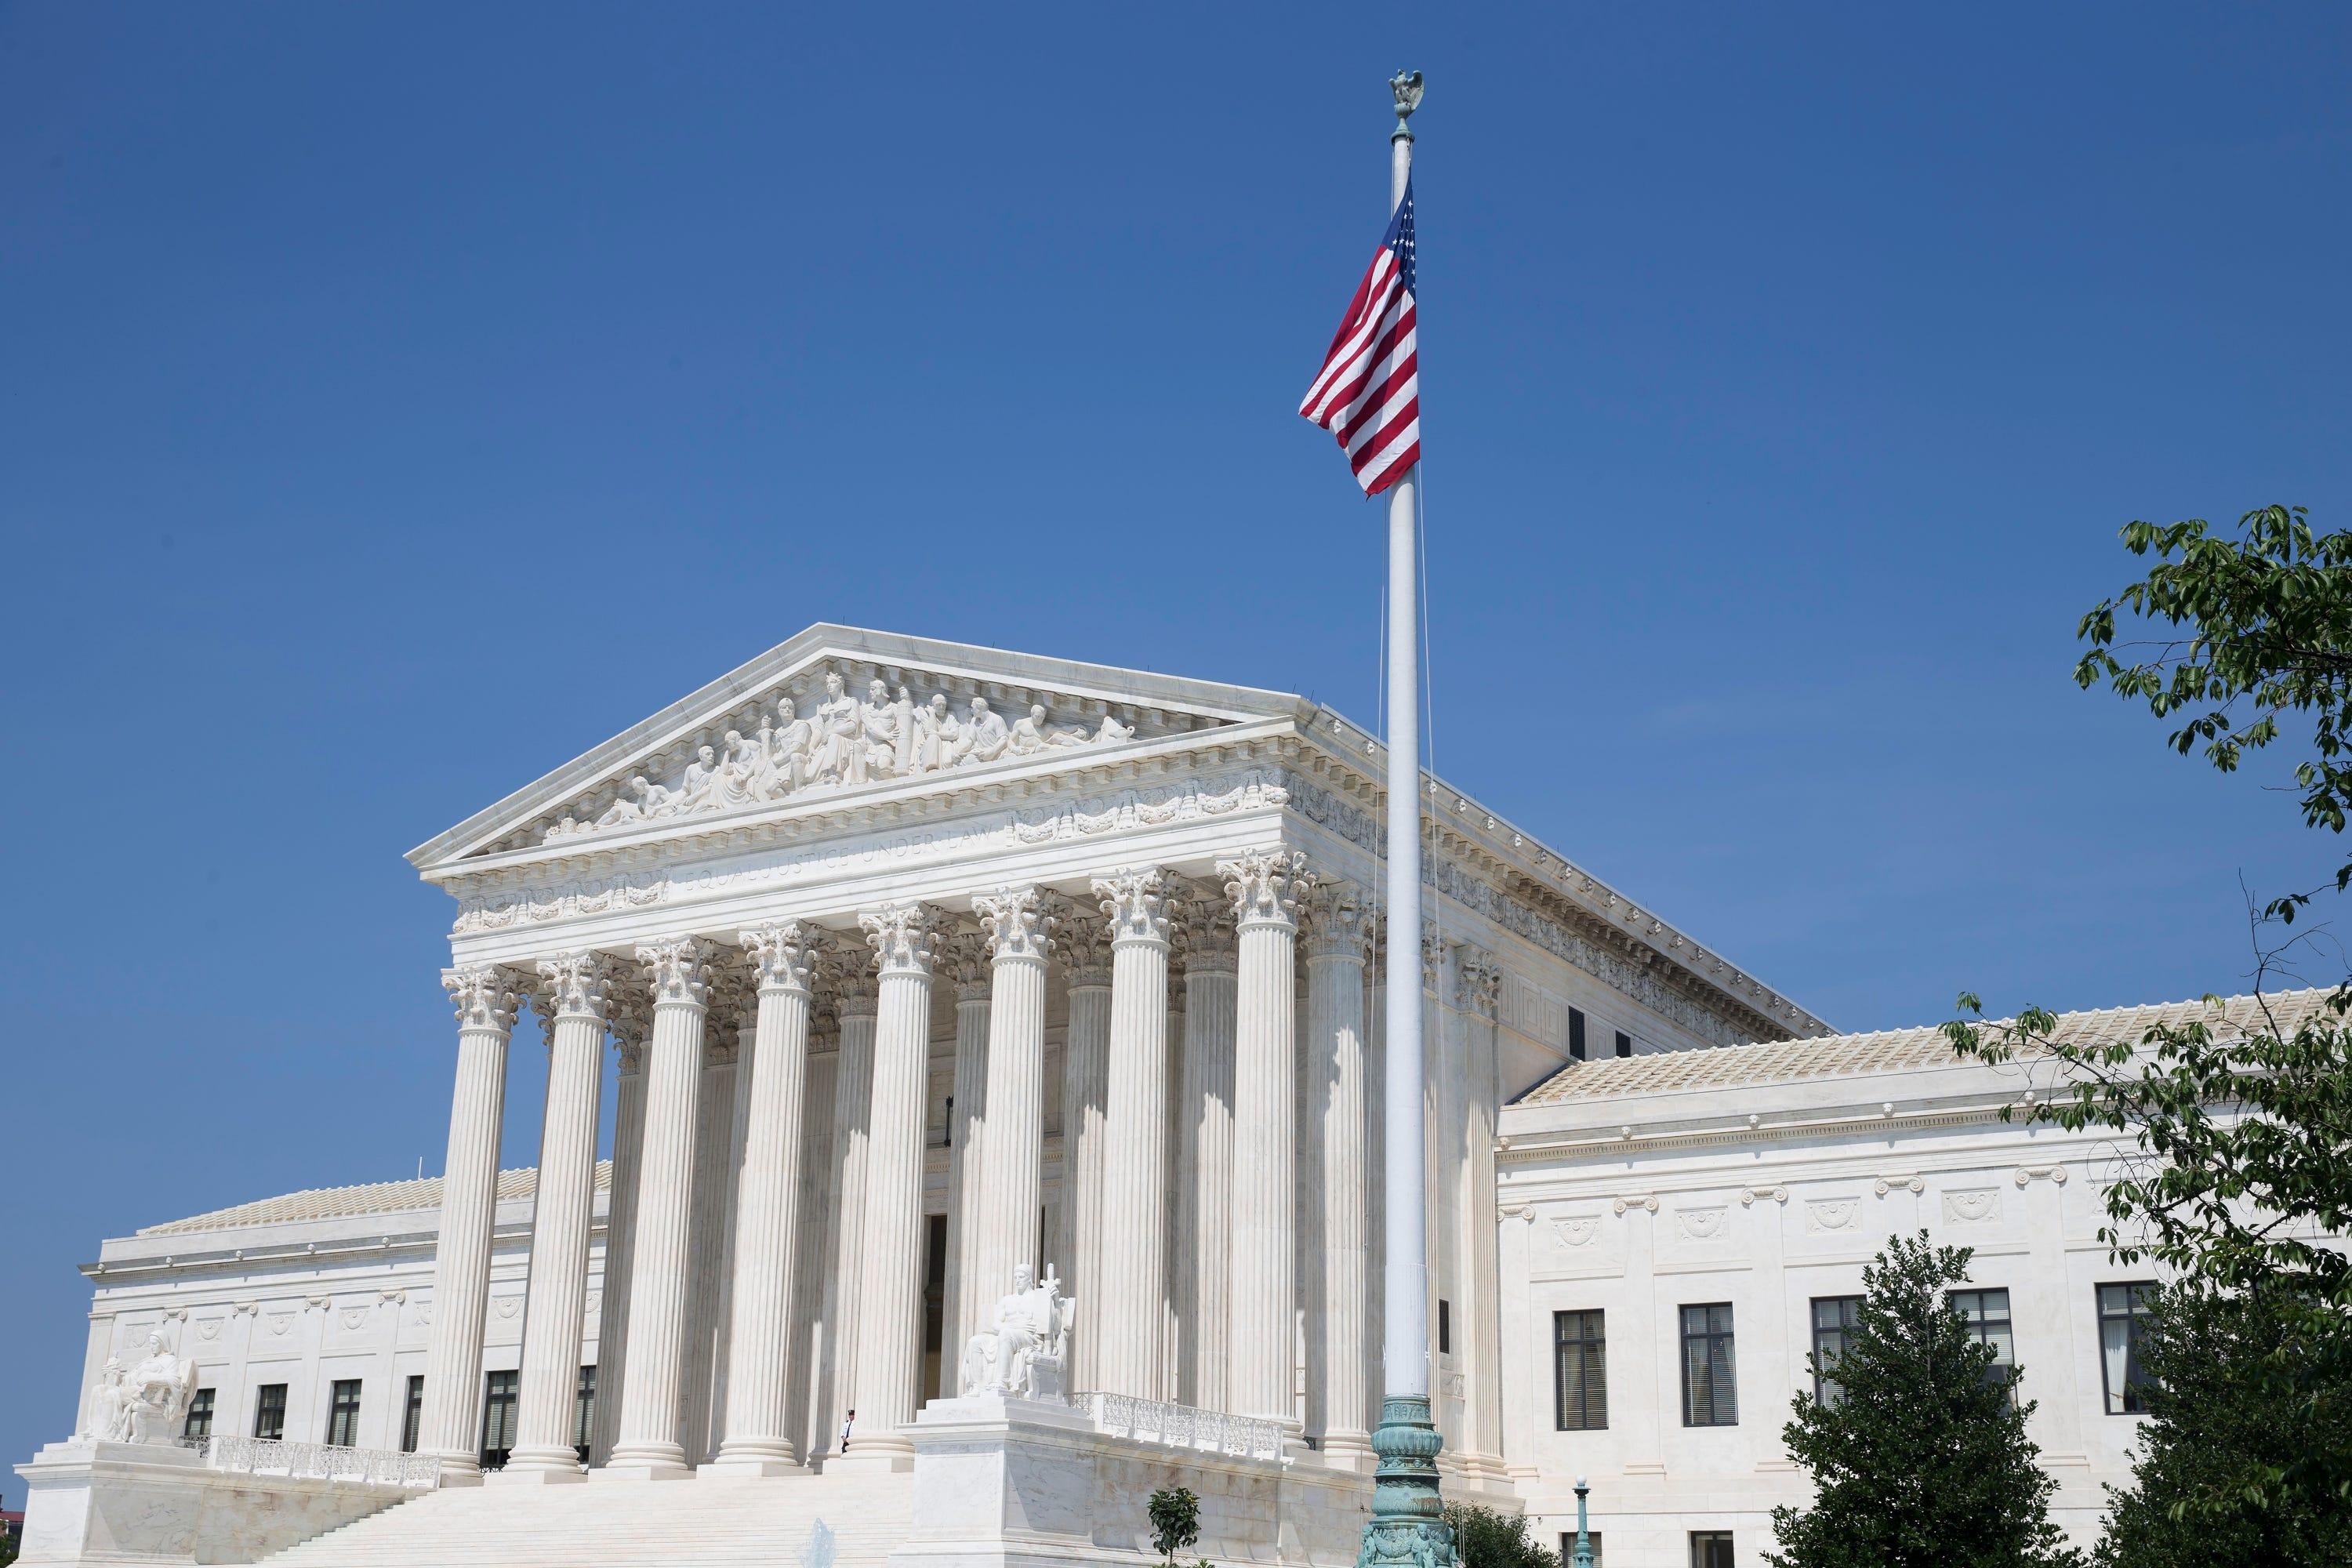 U.S. Supreme Court turns down case challenging Arizona's death penalty | AZ Central